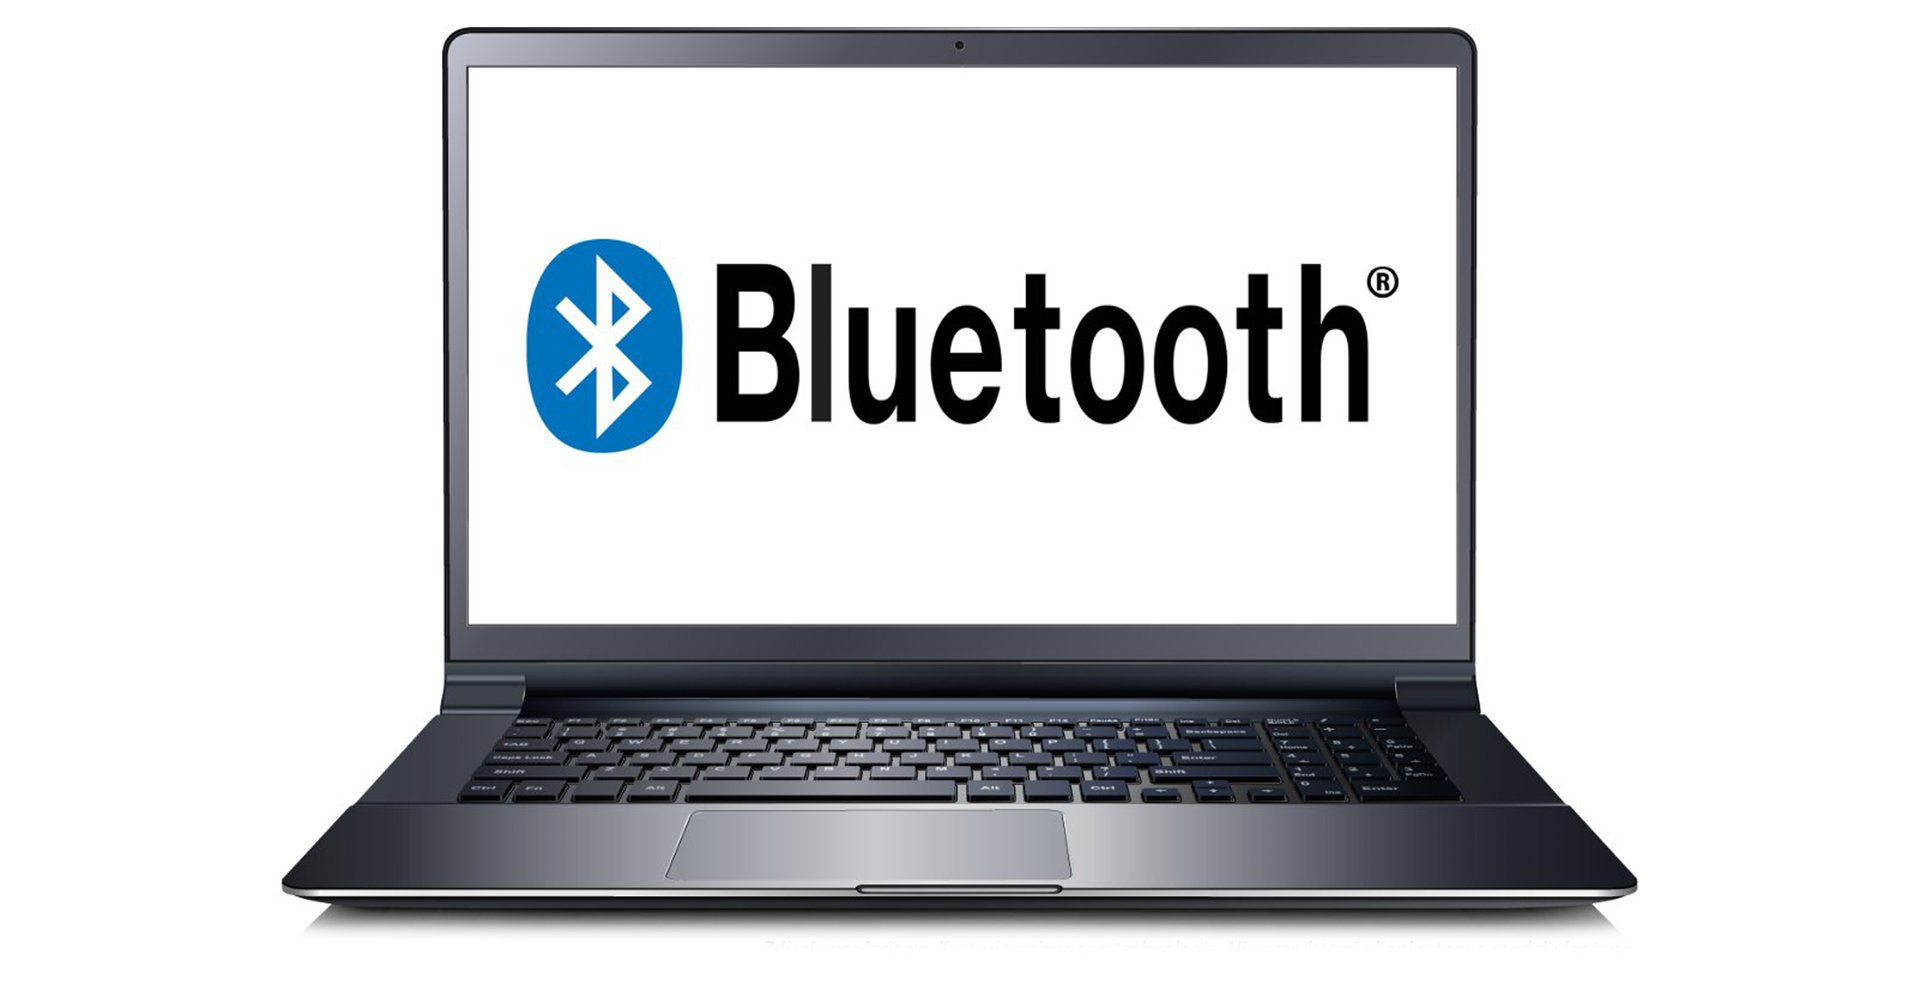 Lenovo ThinkPad X1 Carbon 6th Gen (20KH006DPB)                             Bluetooth